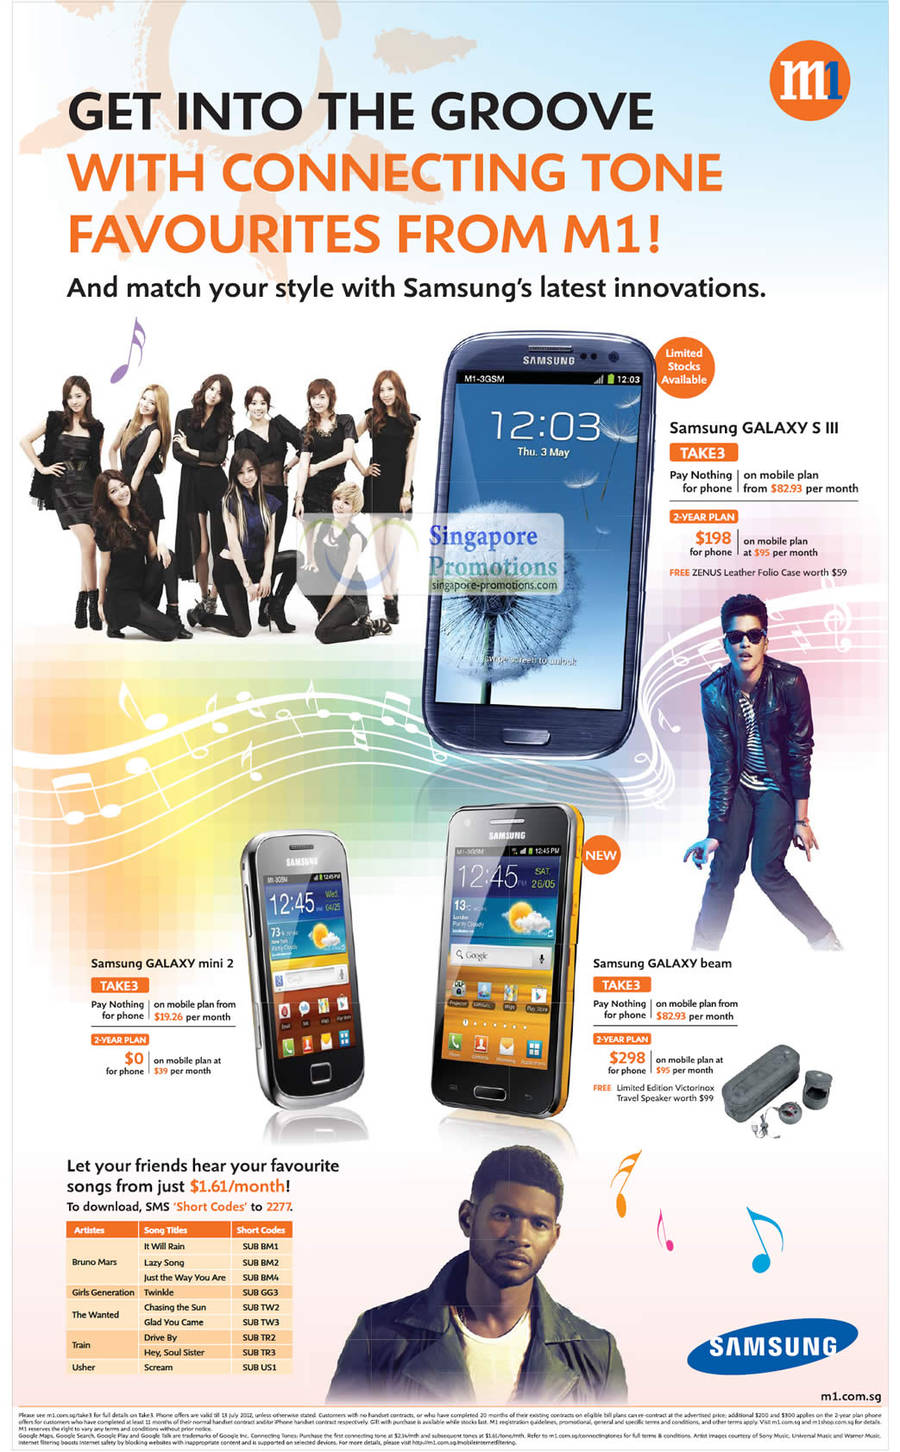 Samsung Galaxy S III, Samsung Galaxy Mini 2, Samsung Galaxy Beam